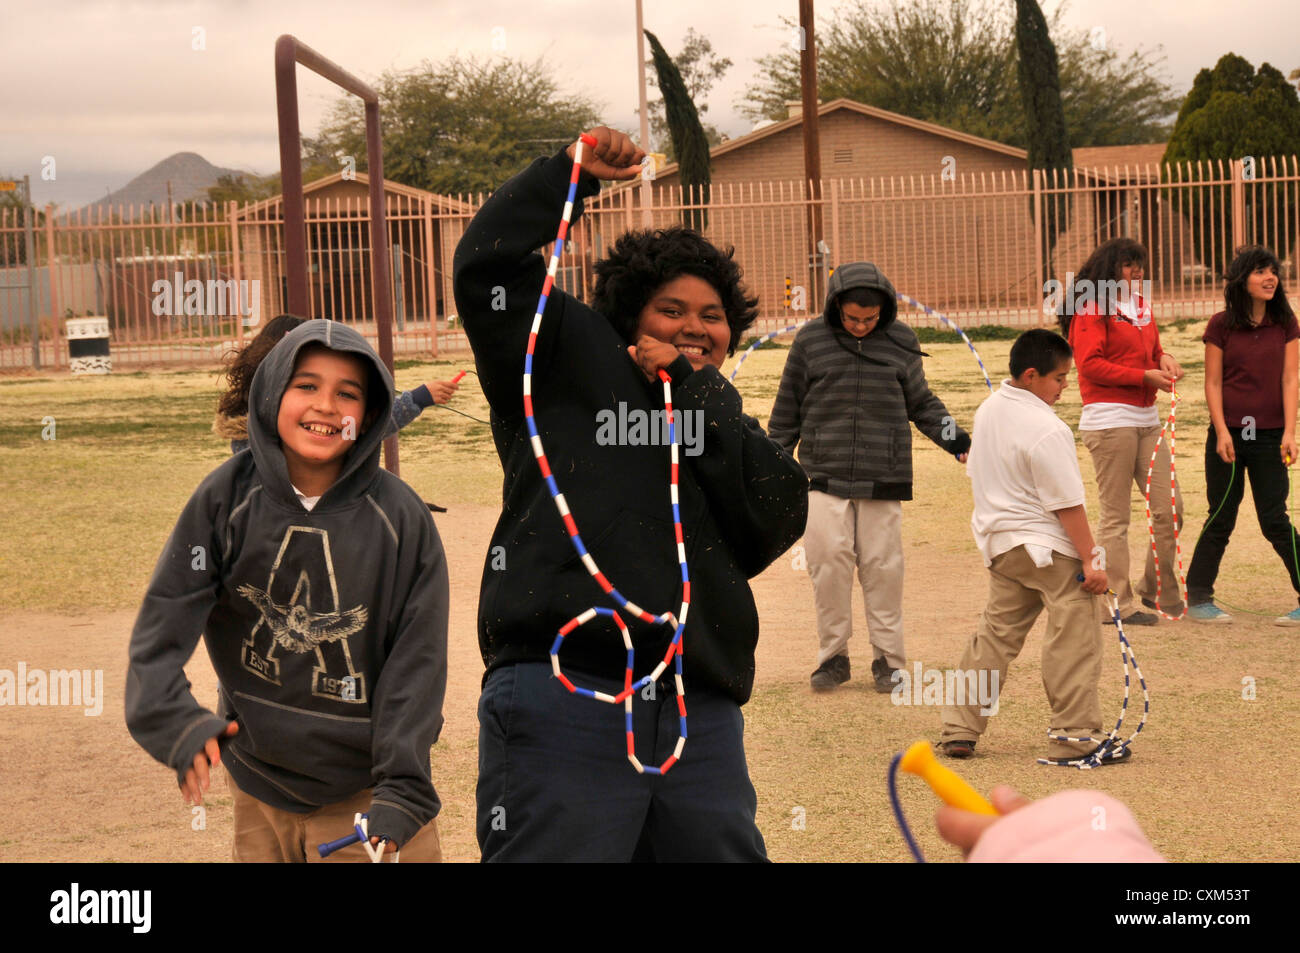 5th-graders participate in Jump Rope For Heart, a fund raising and fitness program, during Wellness Week in Tucson, - Stock Image